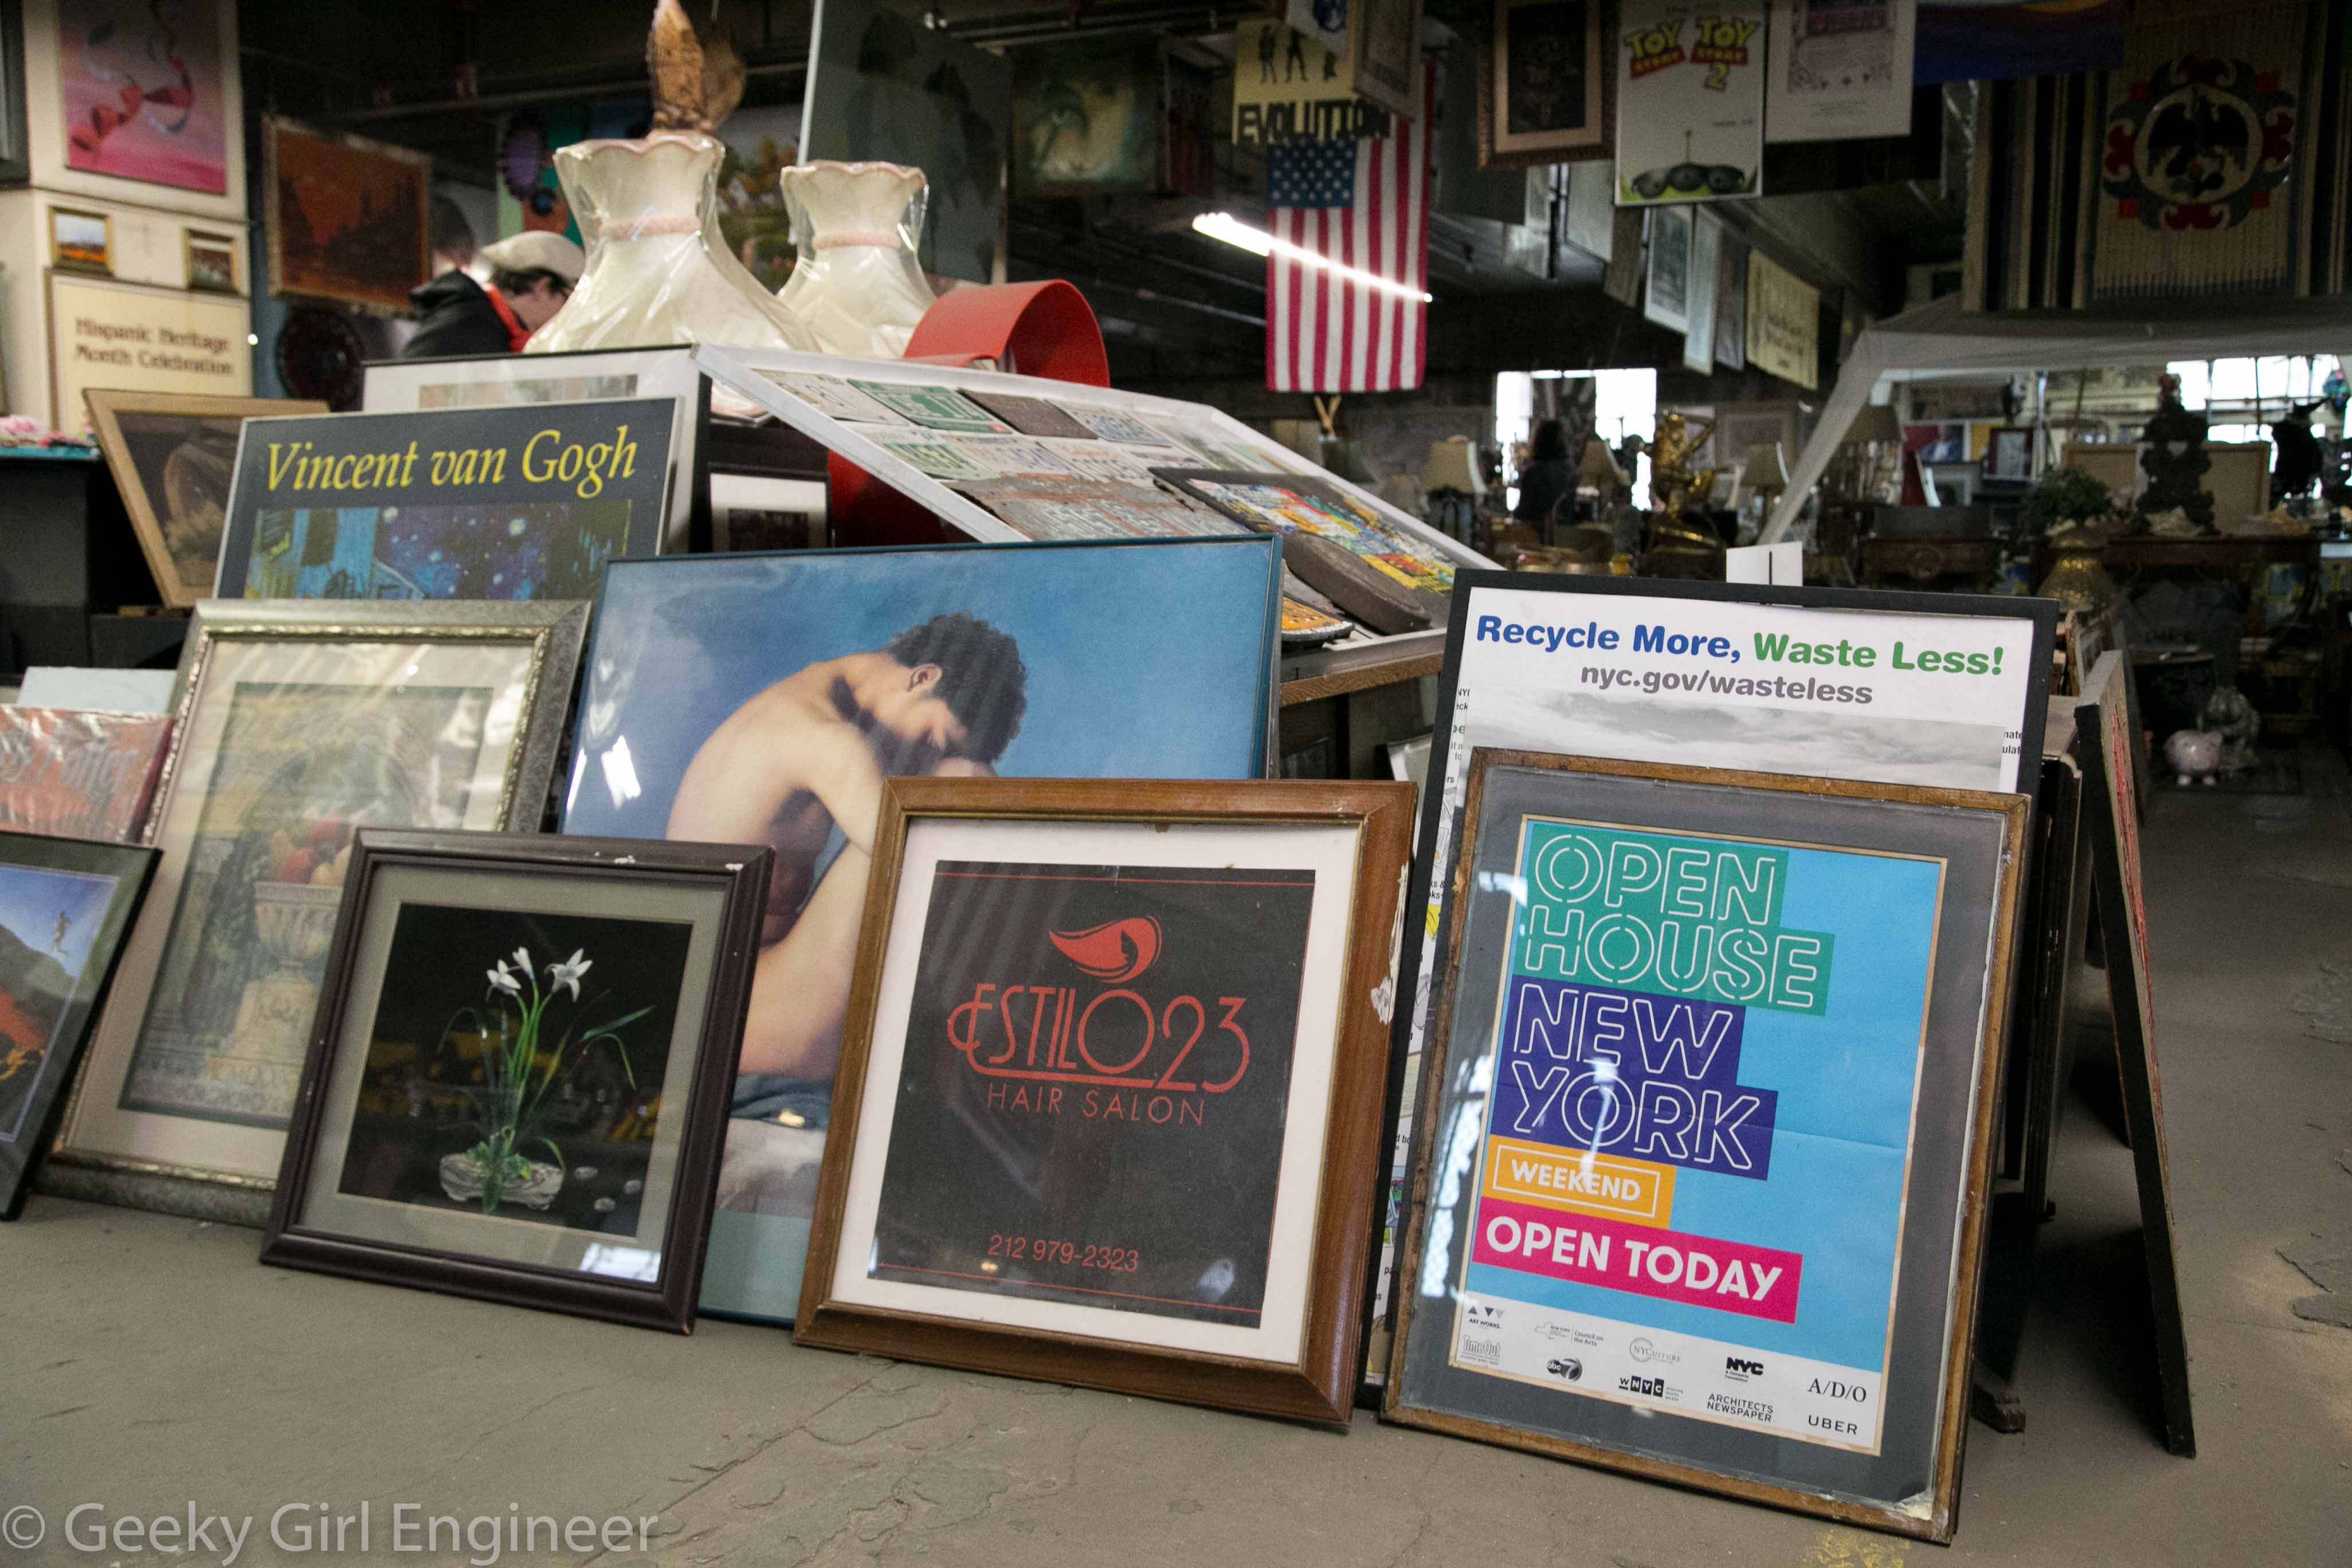 Lots and lots of posters, including one for Open House New York, which arranged the tour